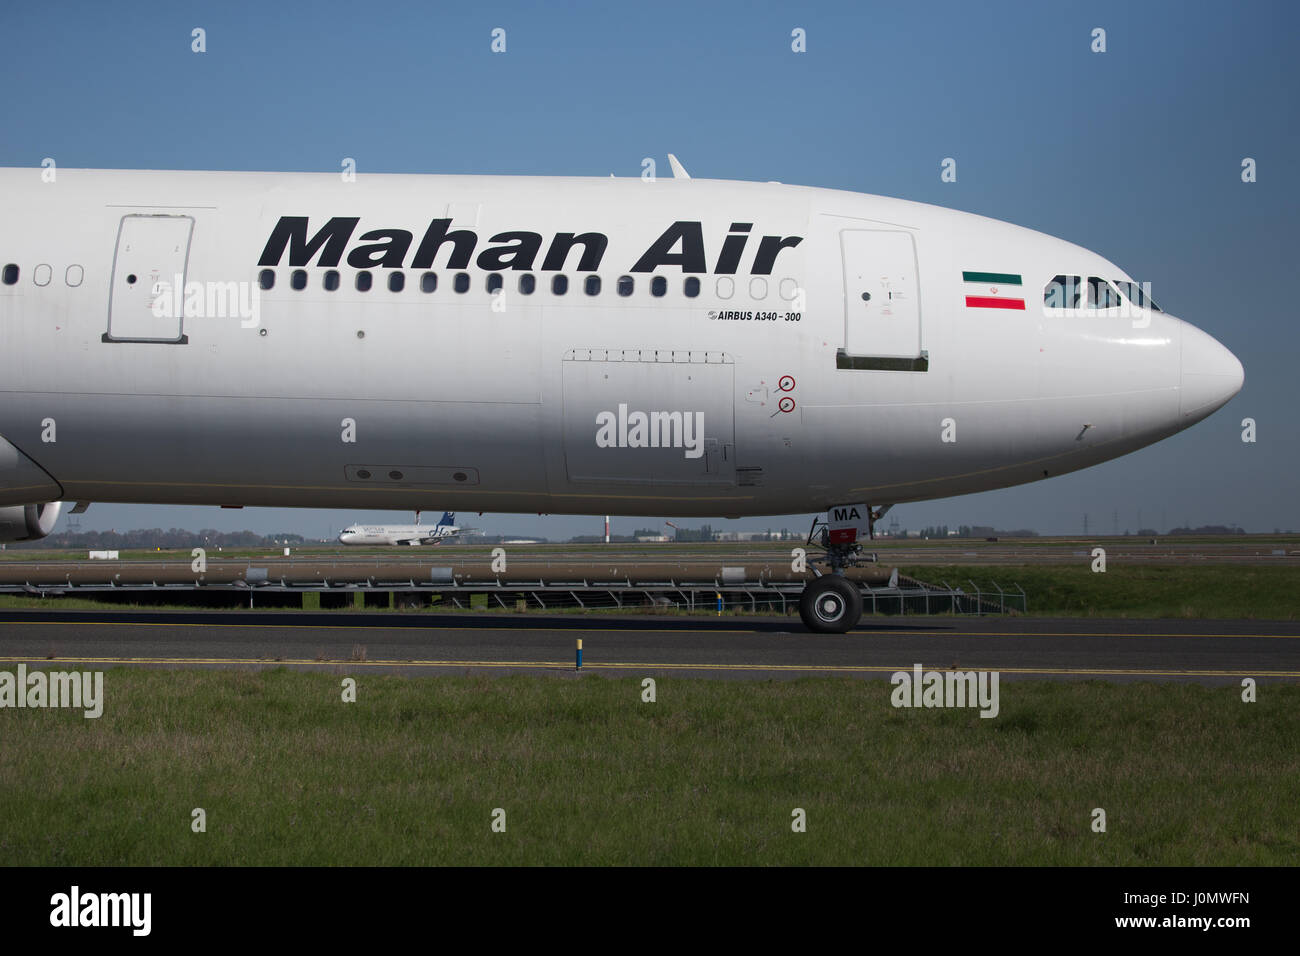 Iranian airline stock photos iranian airline stock images alamy - Iran air office in london ...